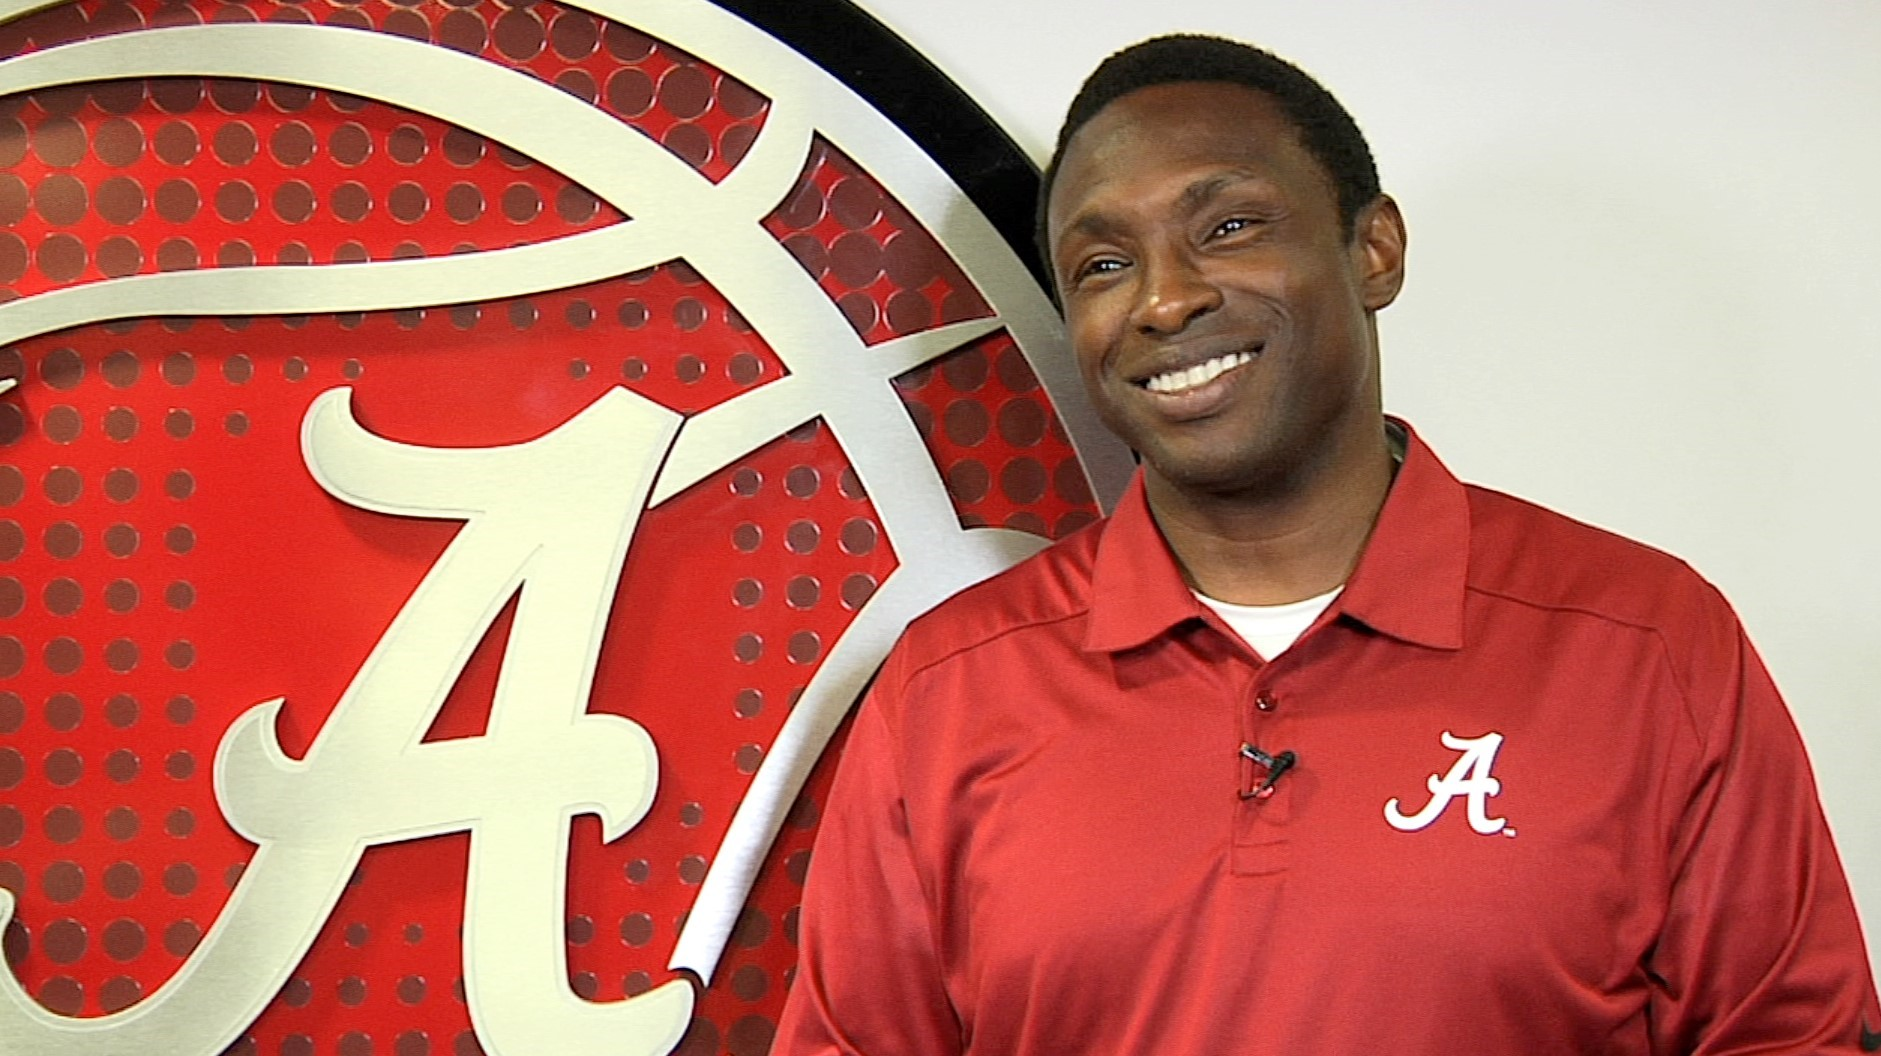 Avery Johnson to Appear on NBA TV Thursday Night as 2016 Draft